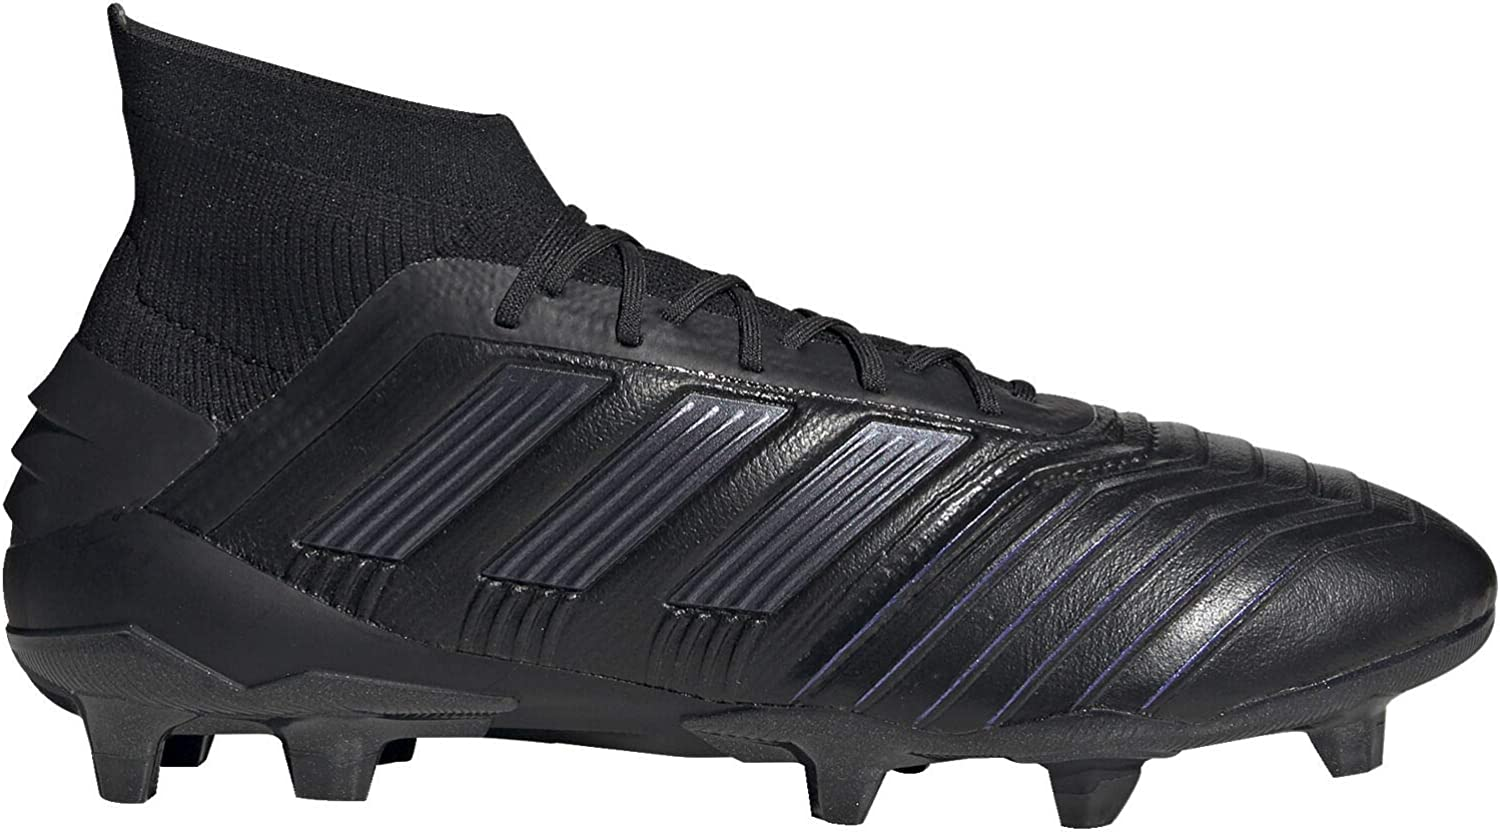 adidas Predator 19.1 Latest online shopping item Firm Cleats Leather Ground Men's